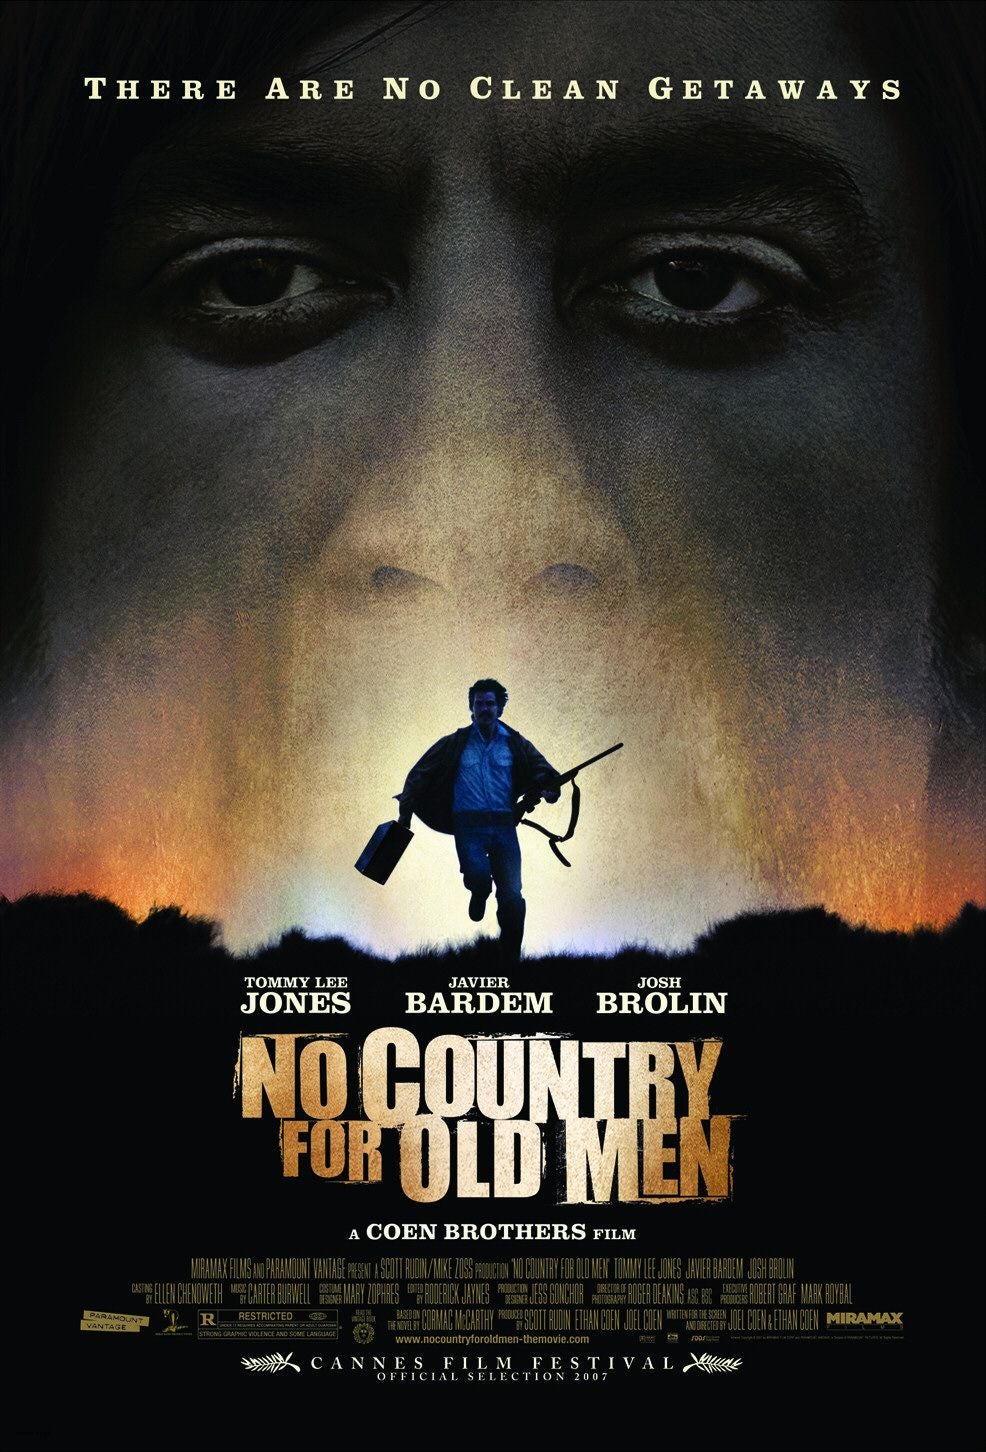 an analysis of the character of sheriff bell in the film no country for old men Let's take a look at arguably their best film, no country for old men is seen in sheriff bell's character to provide insightful film analysis that is.